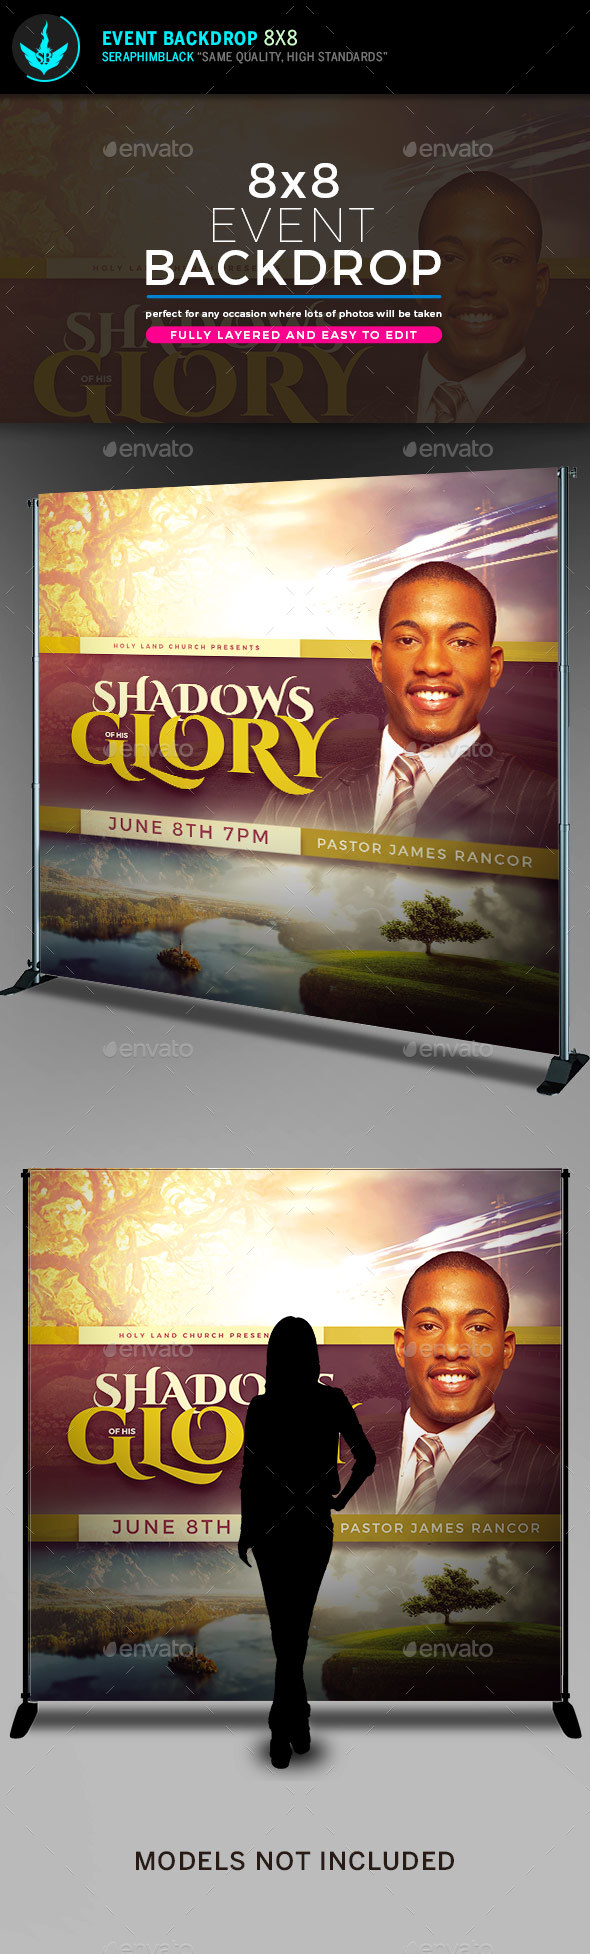 shadows of his glory 8x8 backdrop template by seraphimblack graphicriver. Black Bedroom Furniture Sets. Home Design Ideas